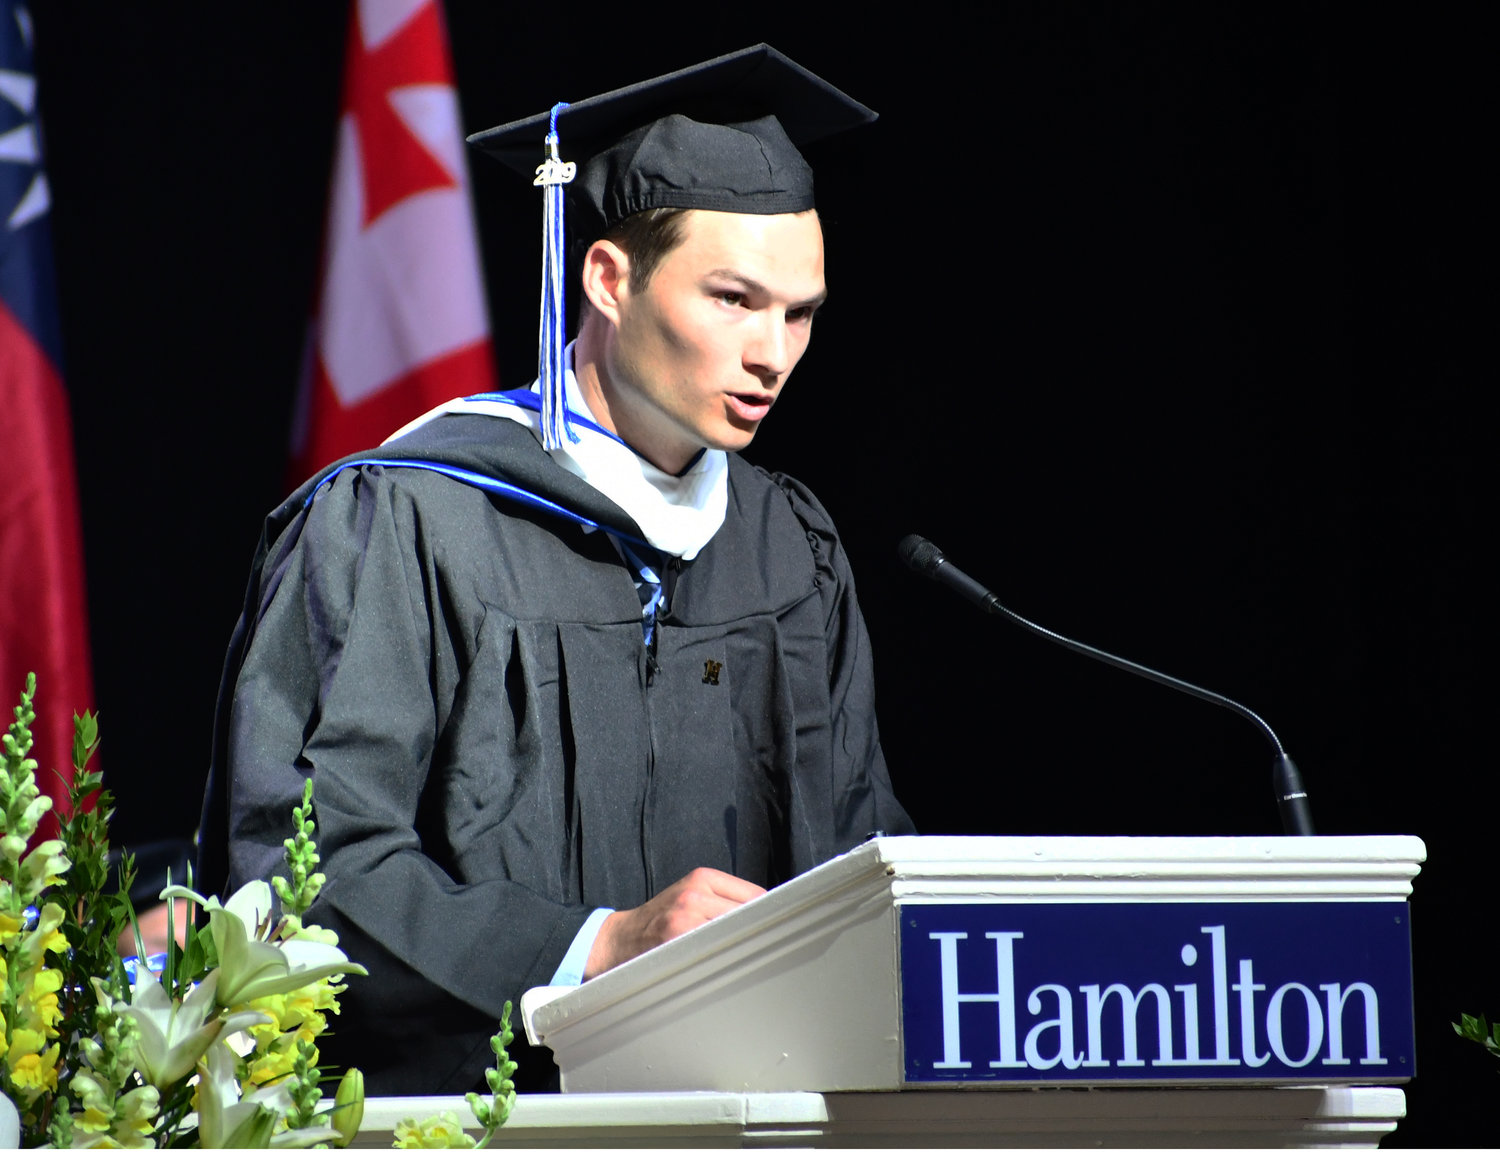 PRIZE WINNER — Hamilton graduate John R. Stickel accepts the James Soper Merrill Prize, awarded to the graduate who in character and influence, best typifies the highest ideals of the college, at the Margaret Bundy Scott Field House on Sunday, May 26 during the Hamilton College Class of 2019 commencement ceremony.